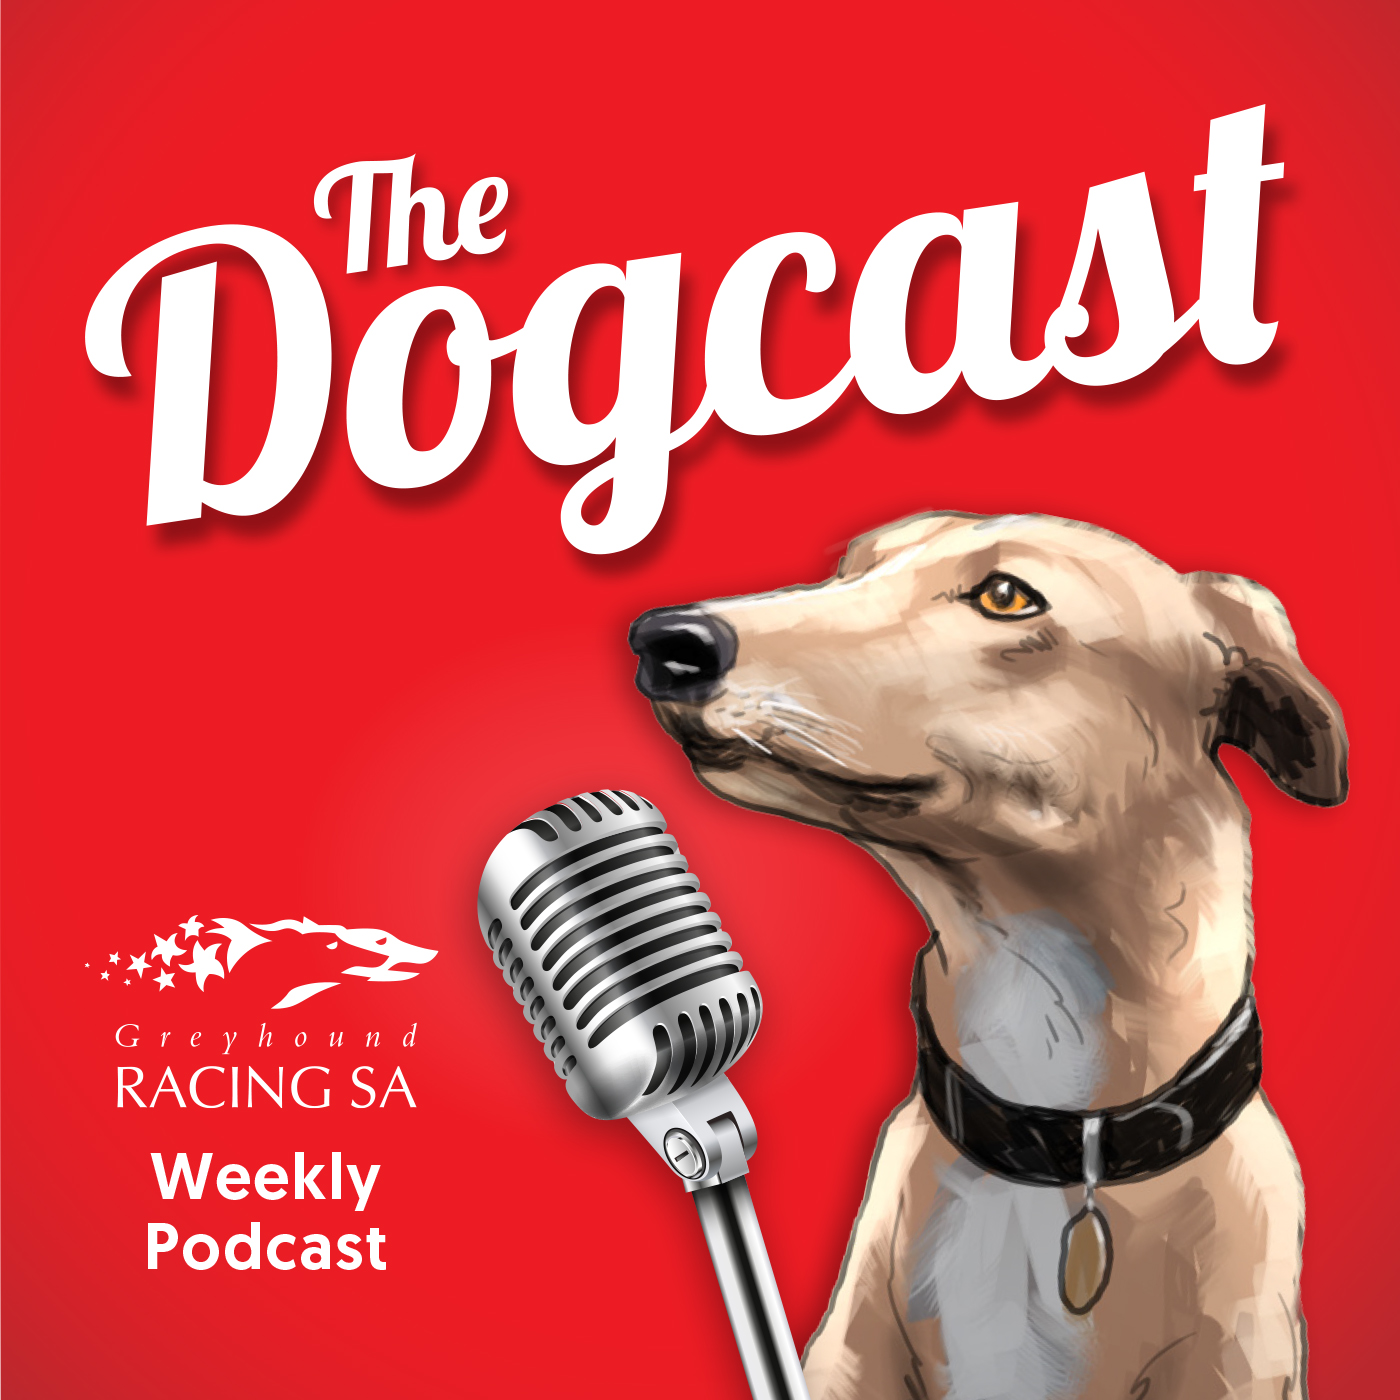 The Dogcast - Episode 2